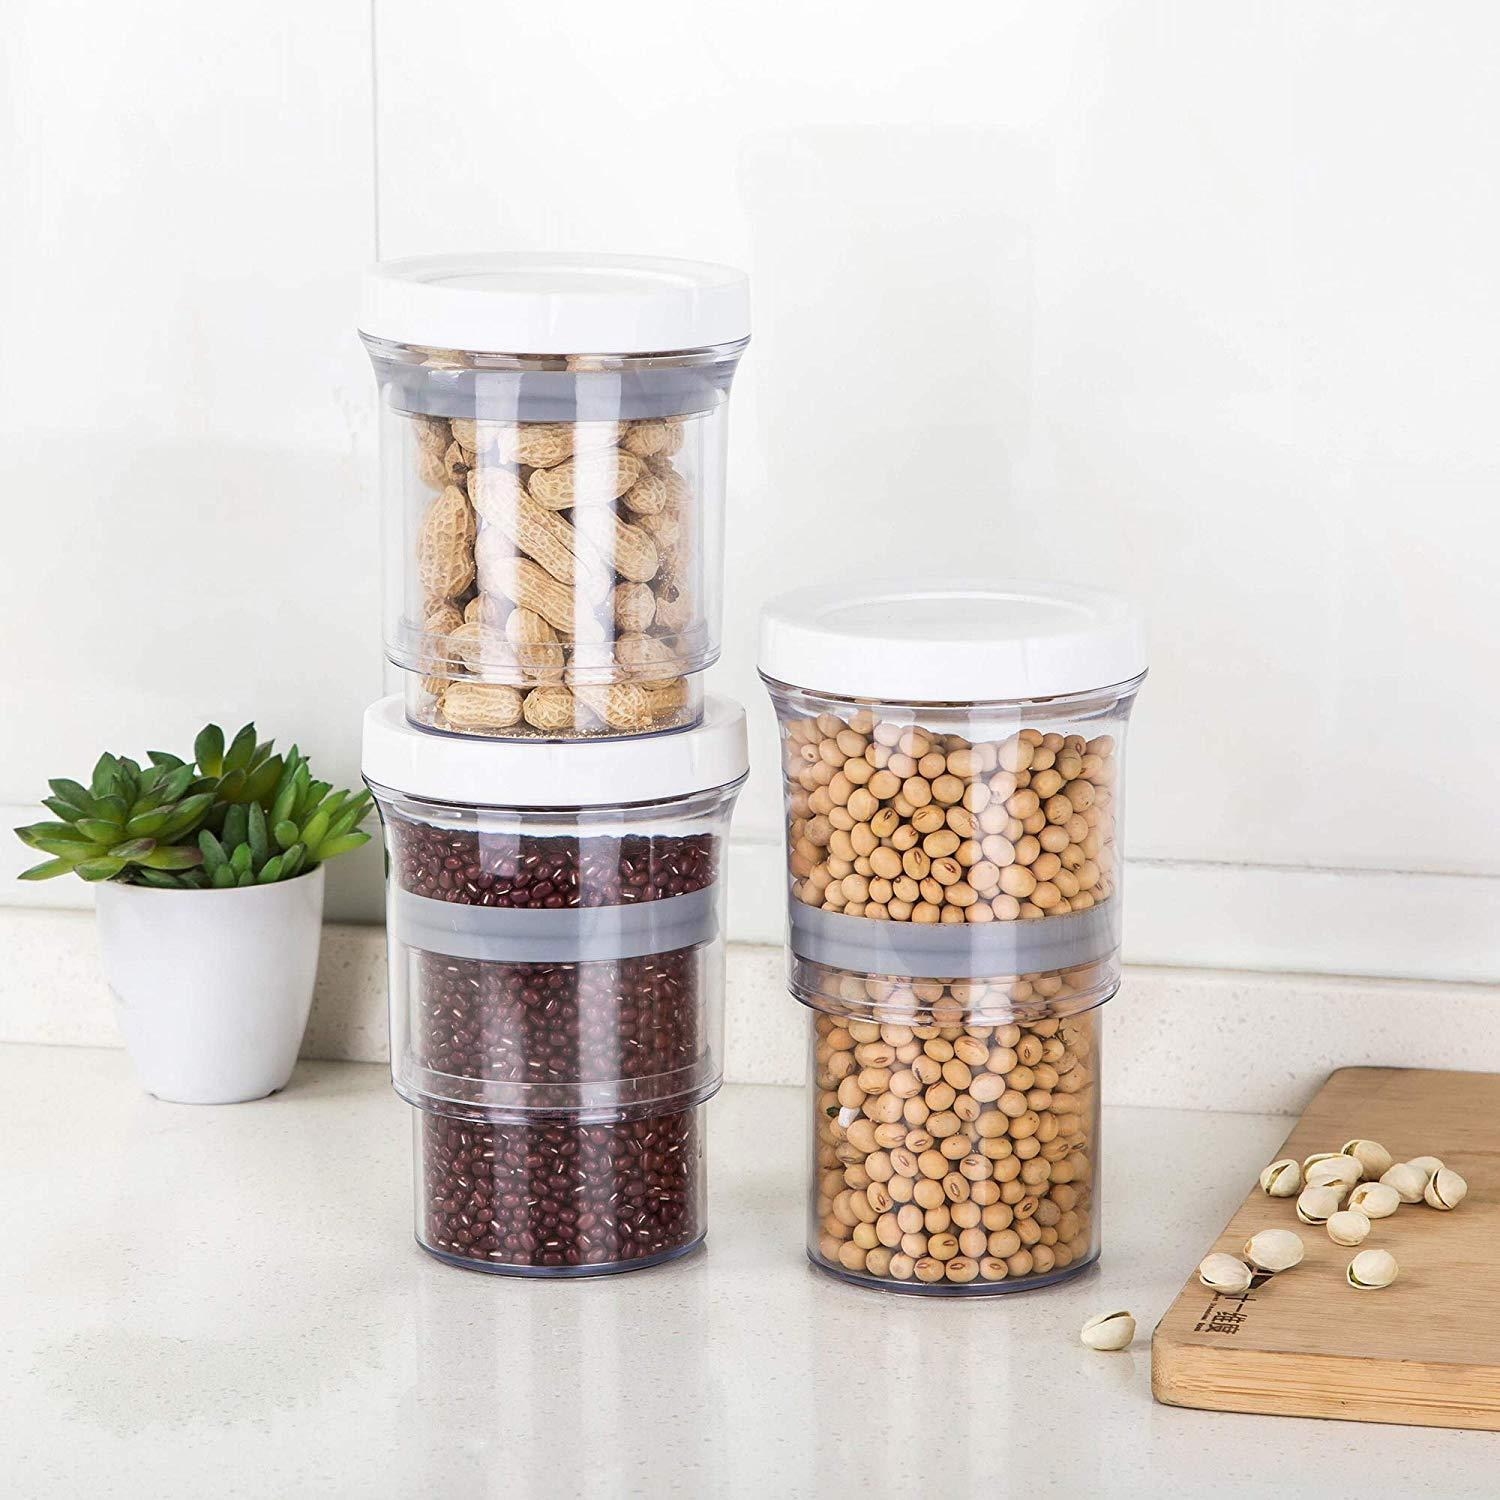 60% OFF - Botta Adjustable Airtight Storage Container (Last Day Promotion)